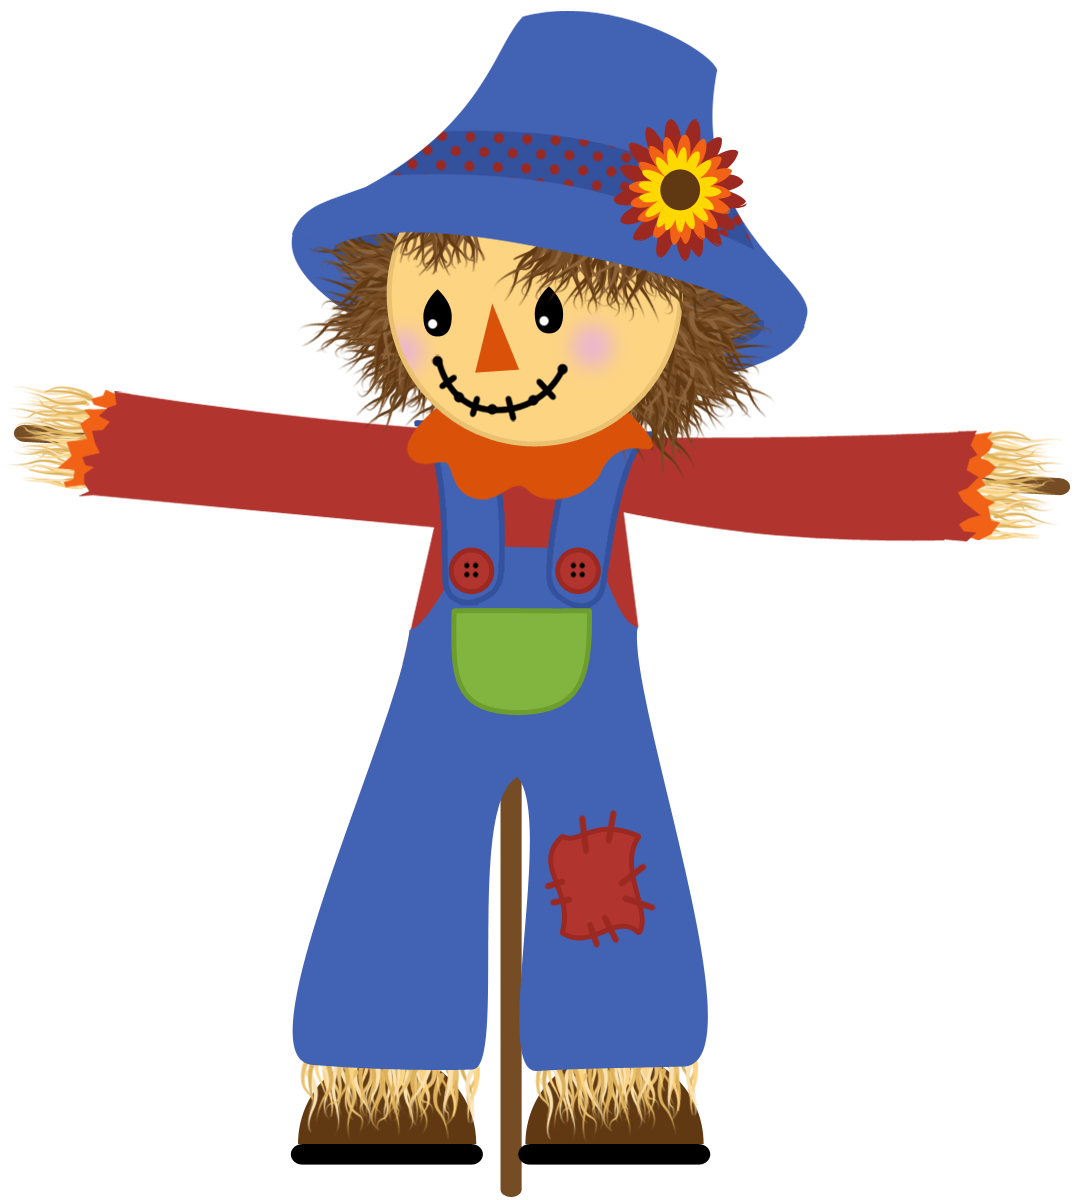 scarecrow clipart google search signage pinterest scarecrows rh pinterest com scarecrow clipart pictures scarecrow clipart png